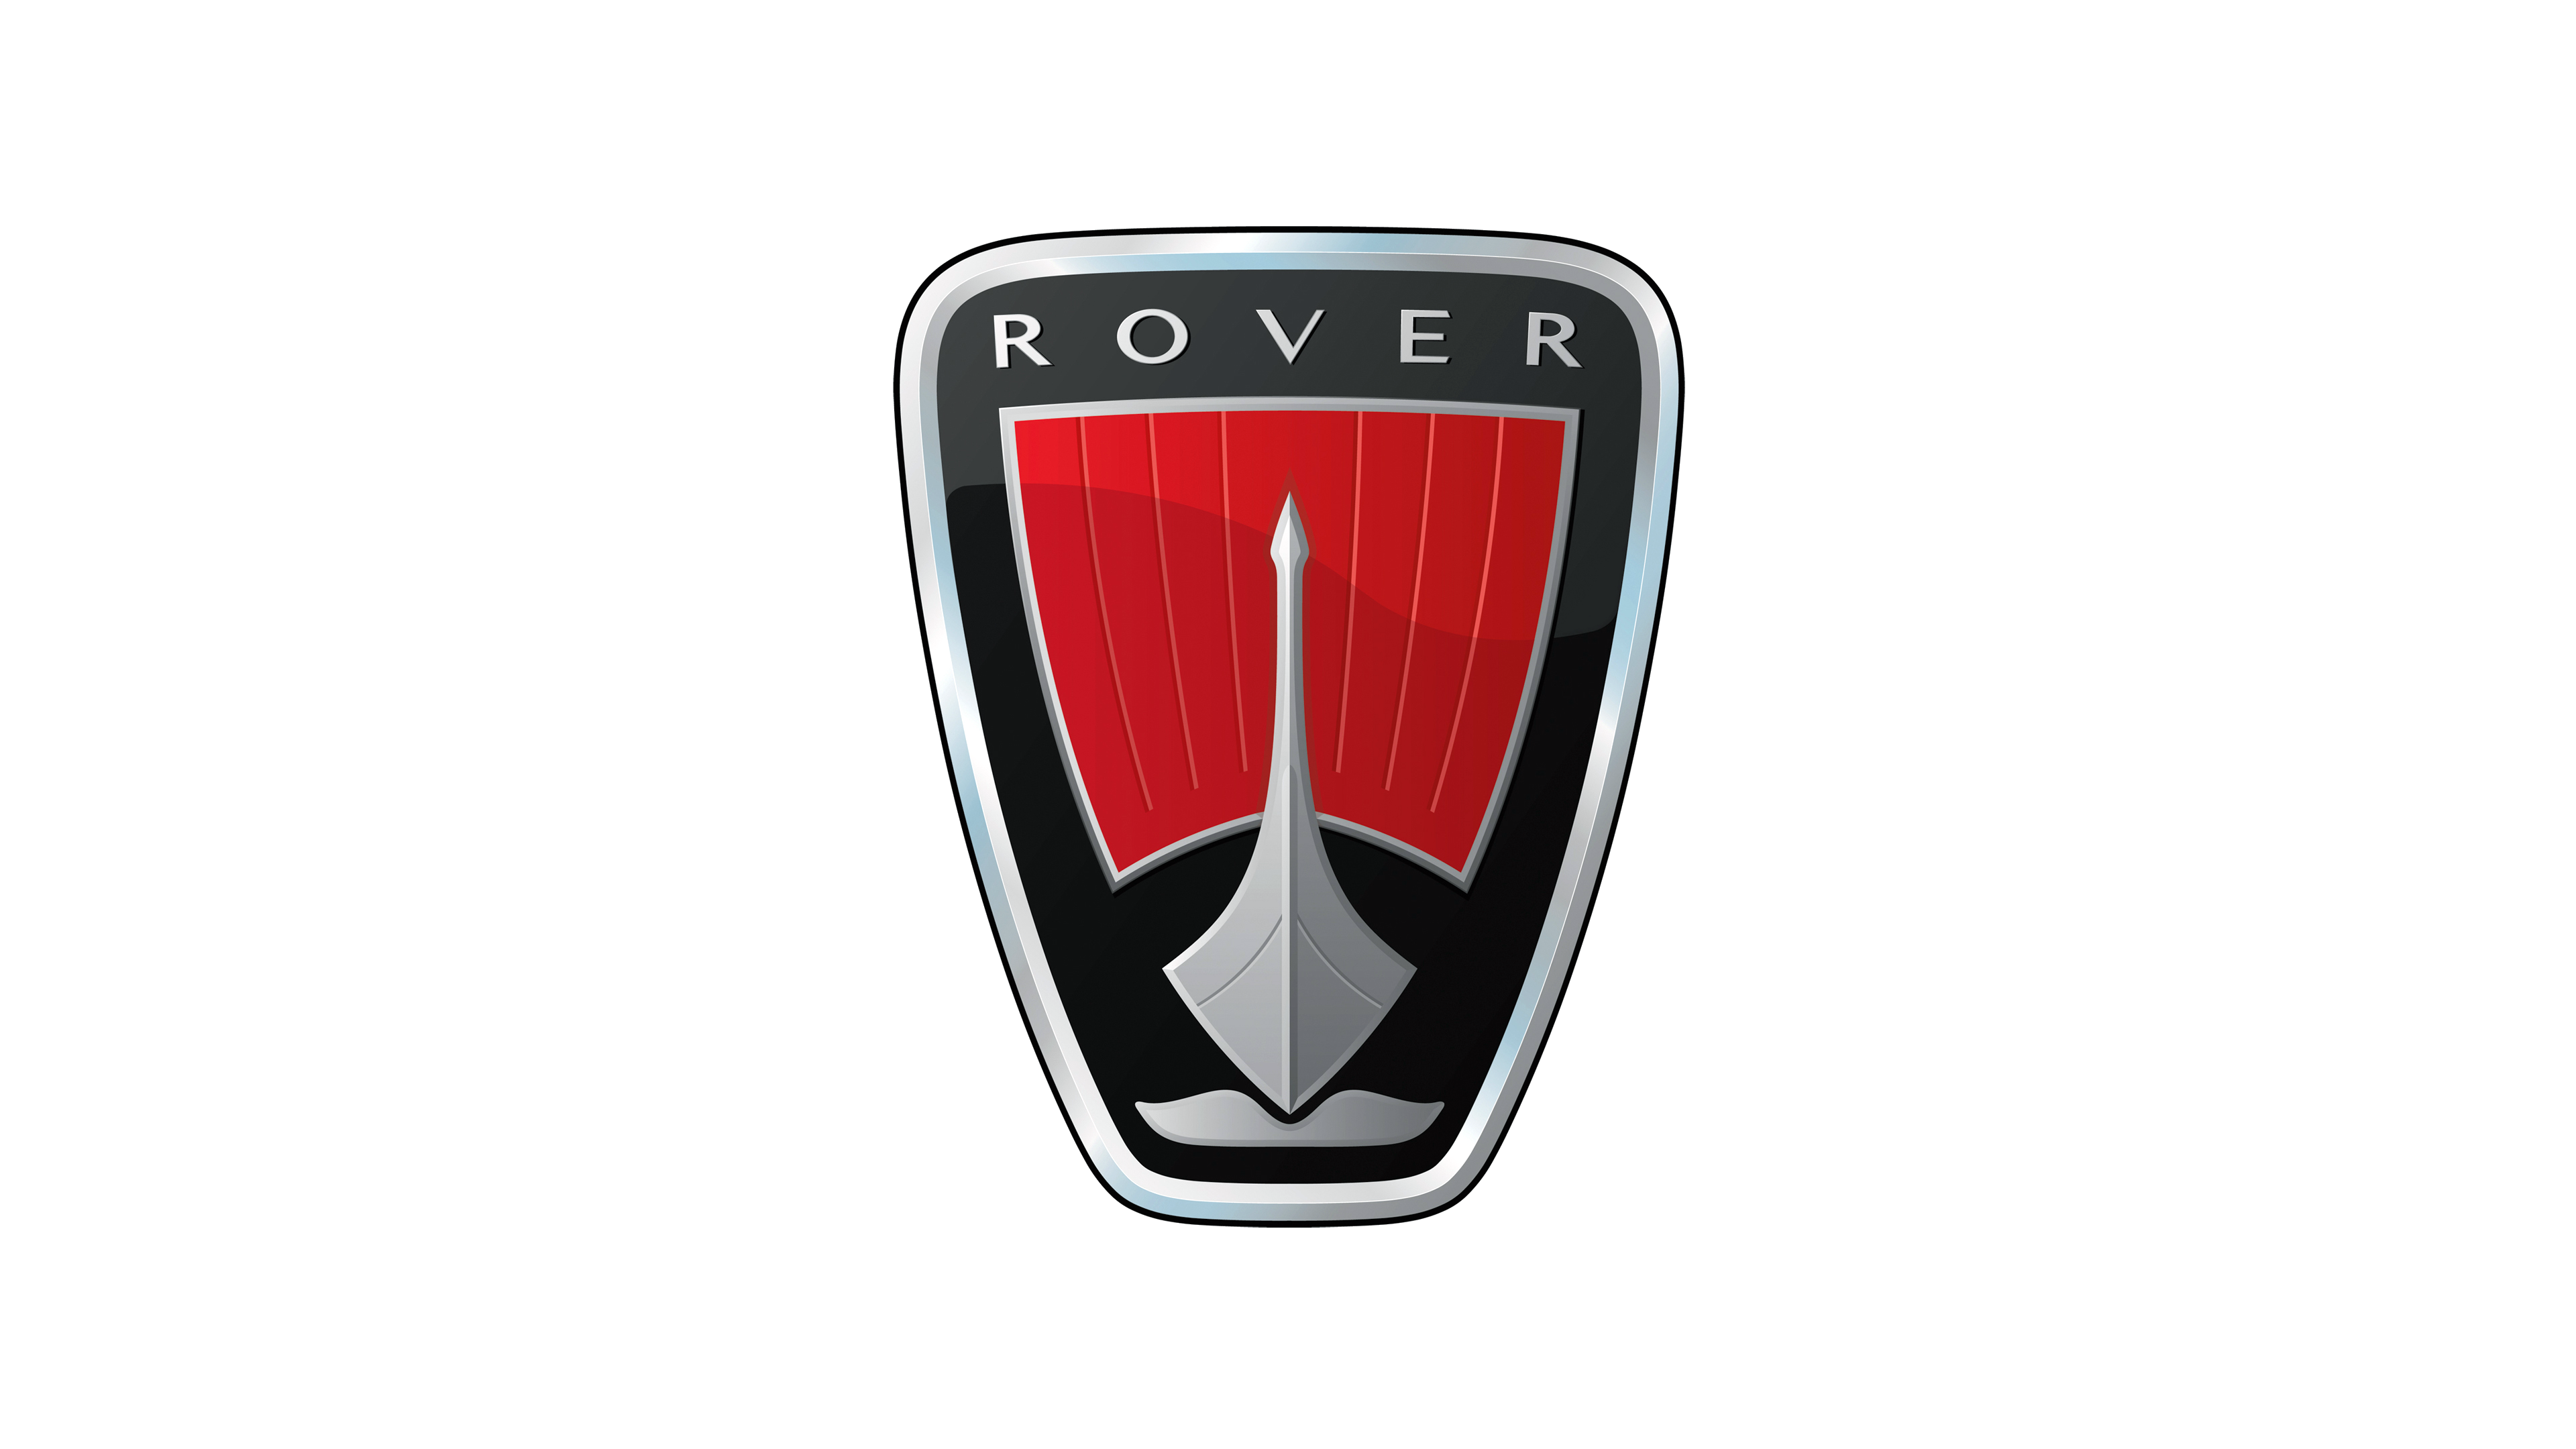 Download Logo Range Rover Hd: Rover Logo, HD Png, Meaning, Information